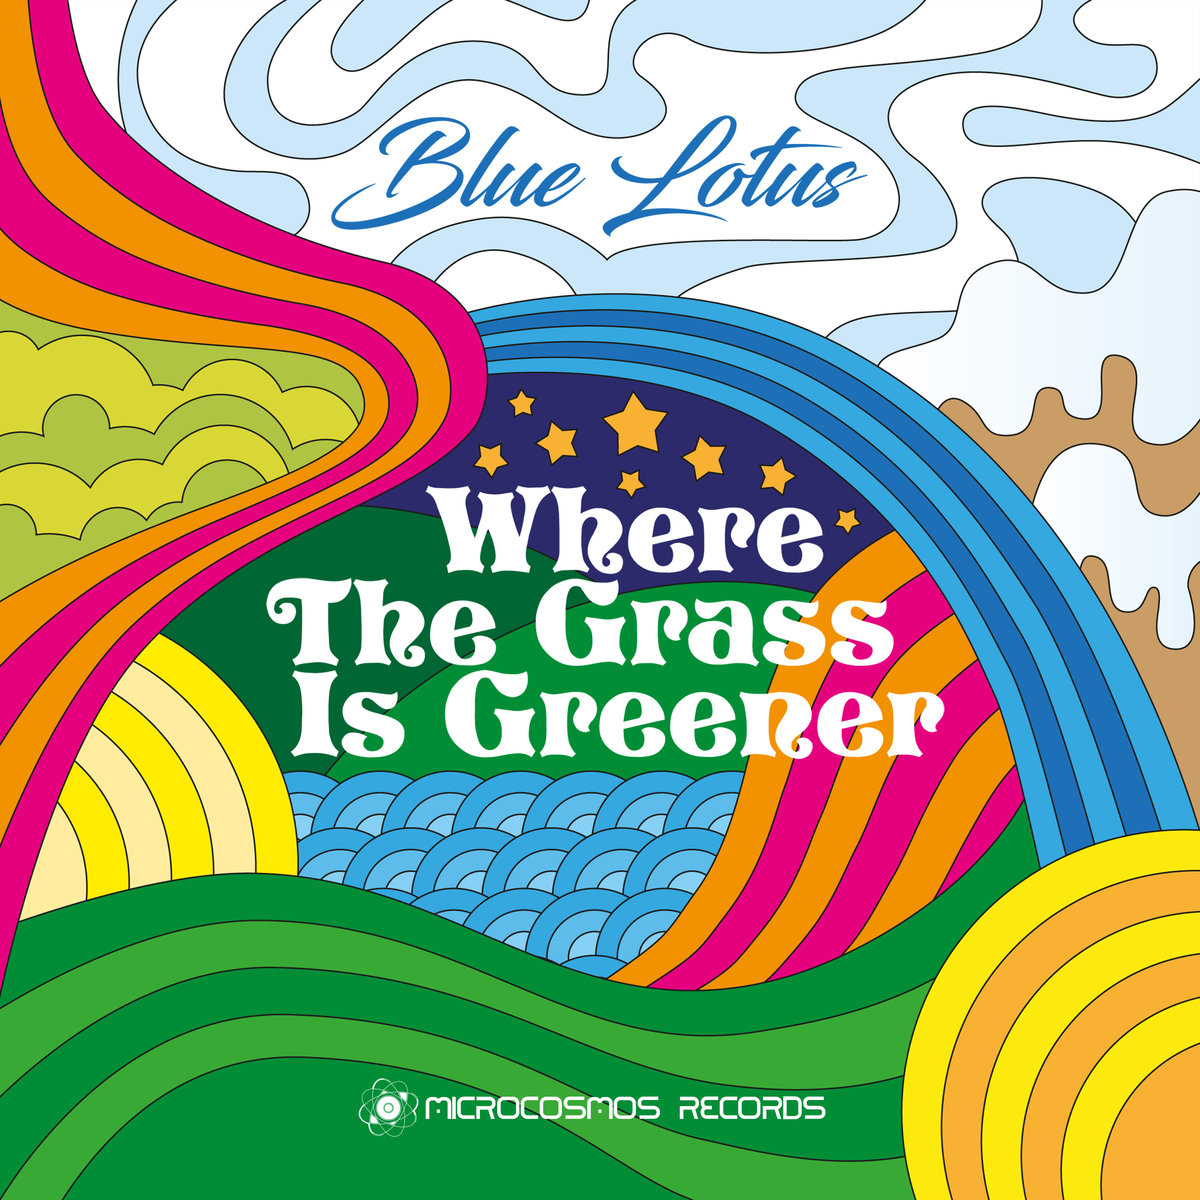 Blue Lotus - Where The Grass Is Greener (artwork)